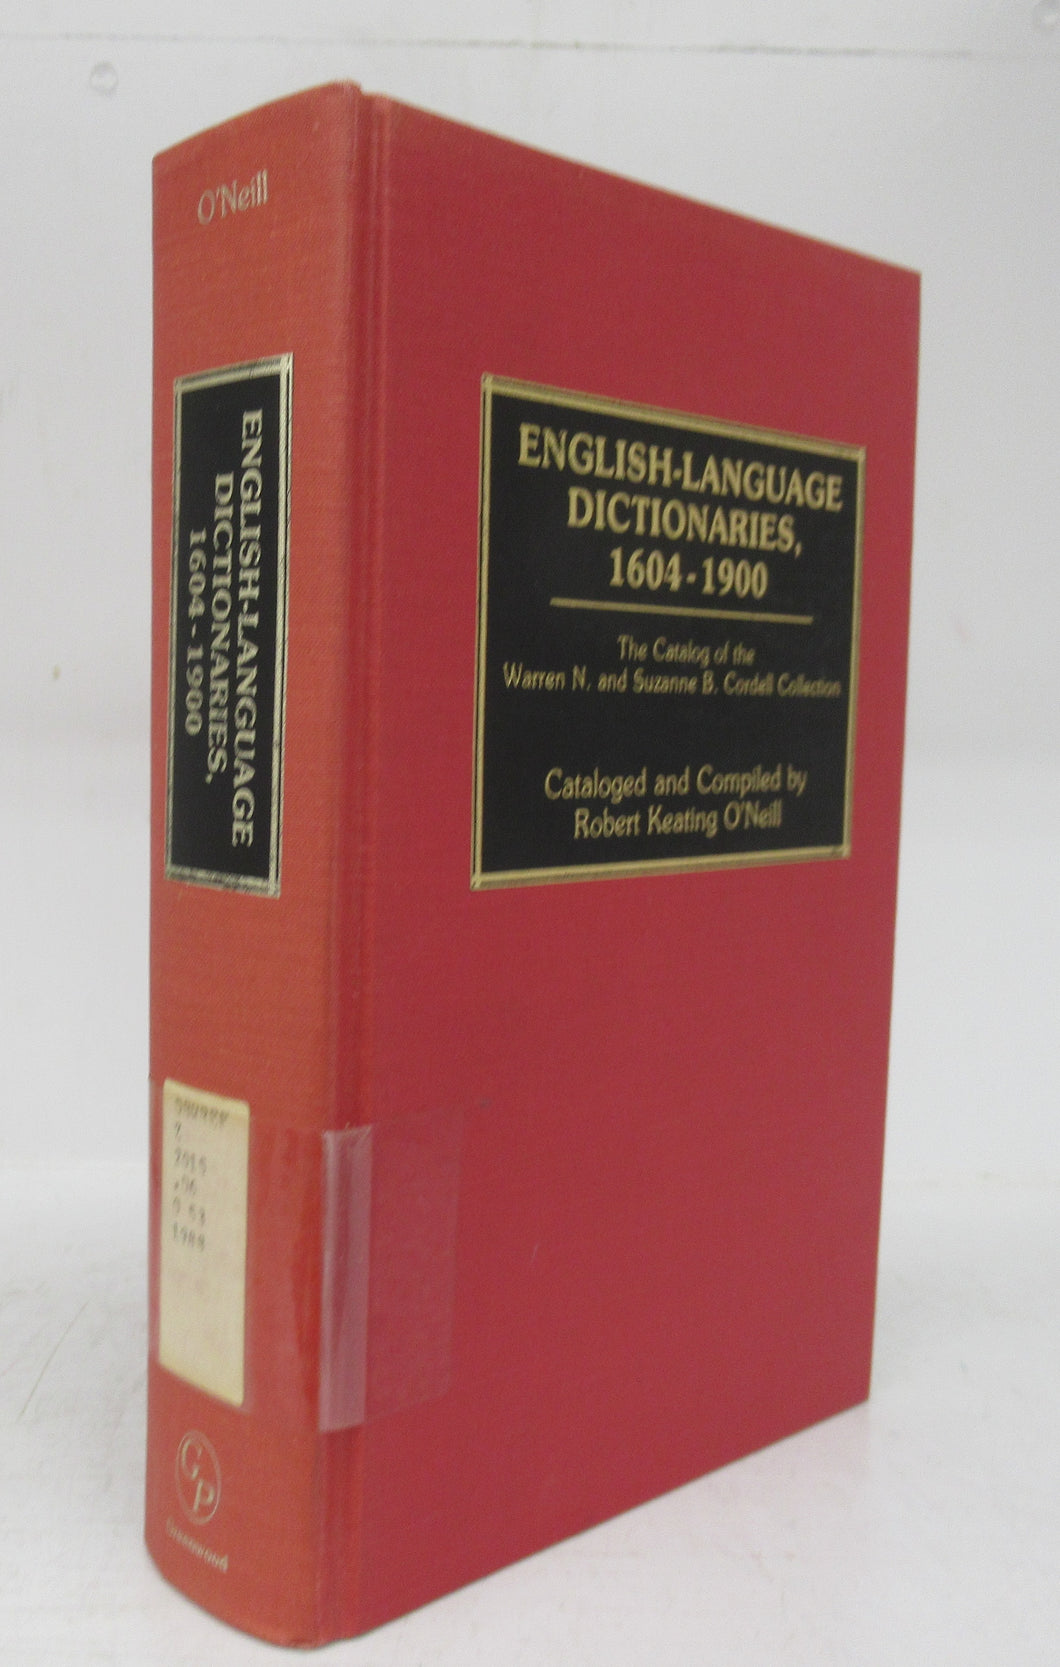 English-Language Dictionaries, 1604-1900: The Catalog of the Warren N. and Suzanne B. Cordell Collection